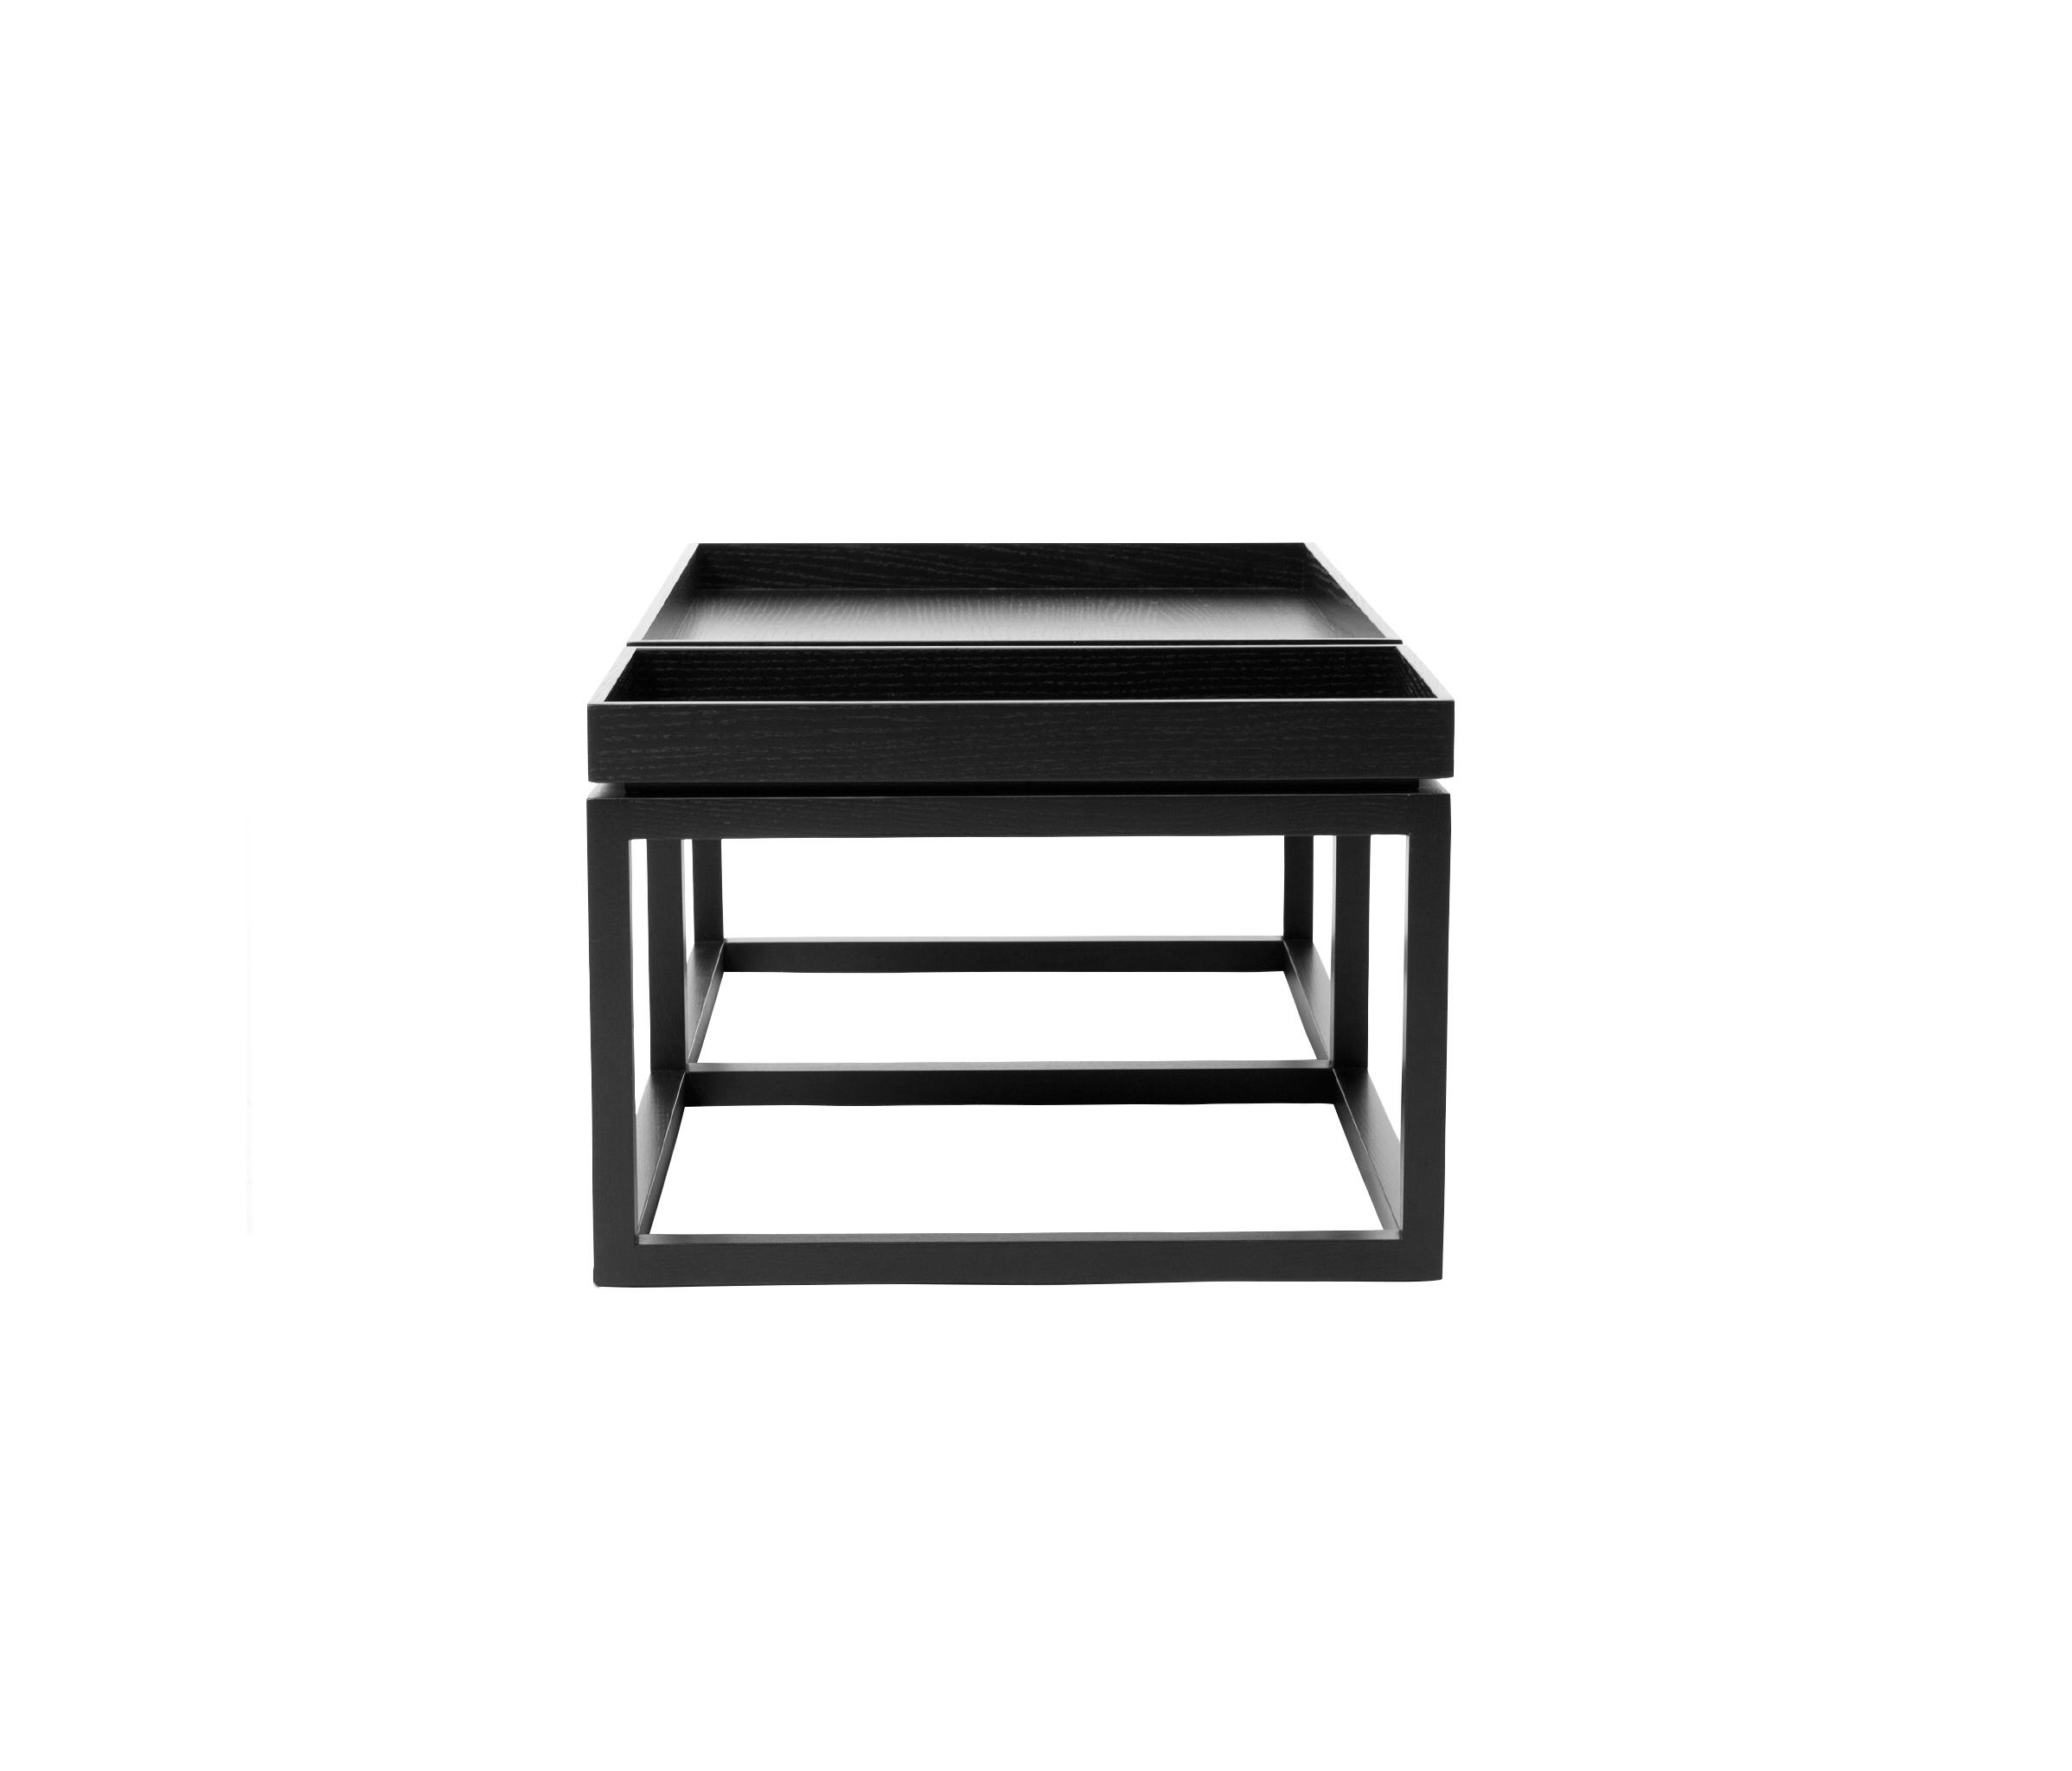 Coffee Table Tray Black Wood Walnut Lounge Tables From Norr11 Architonic